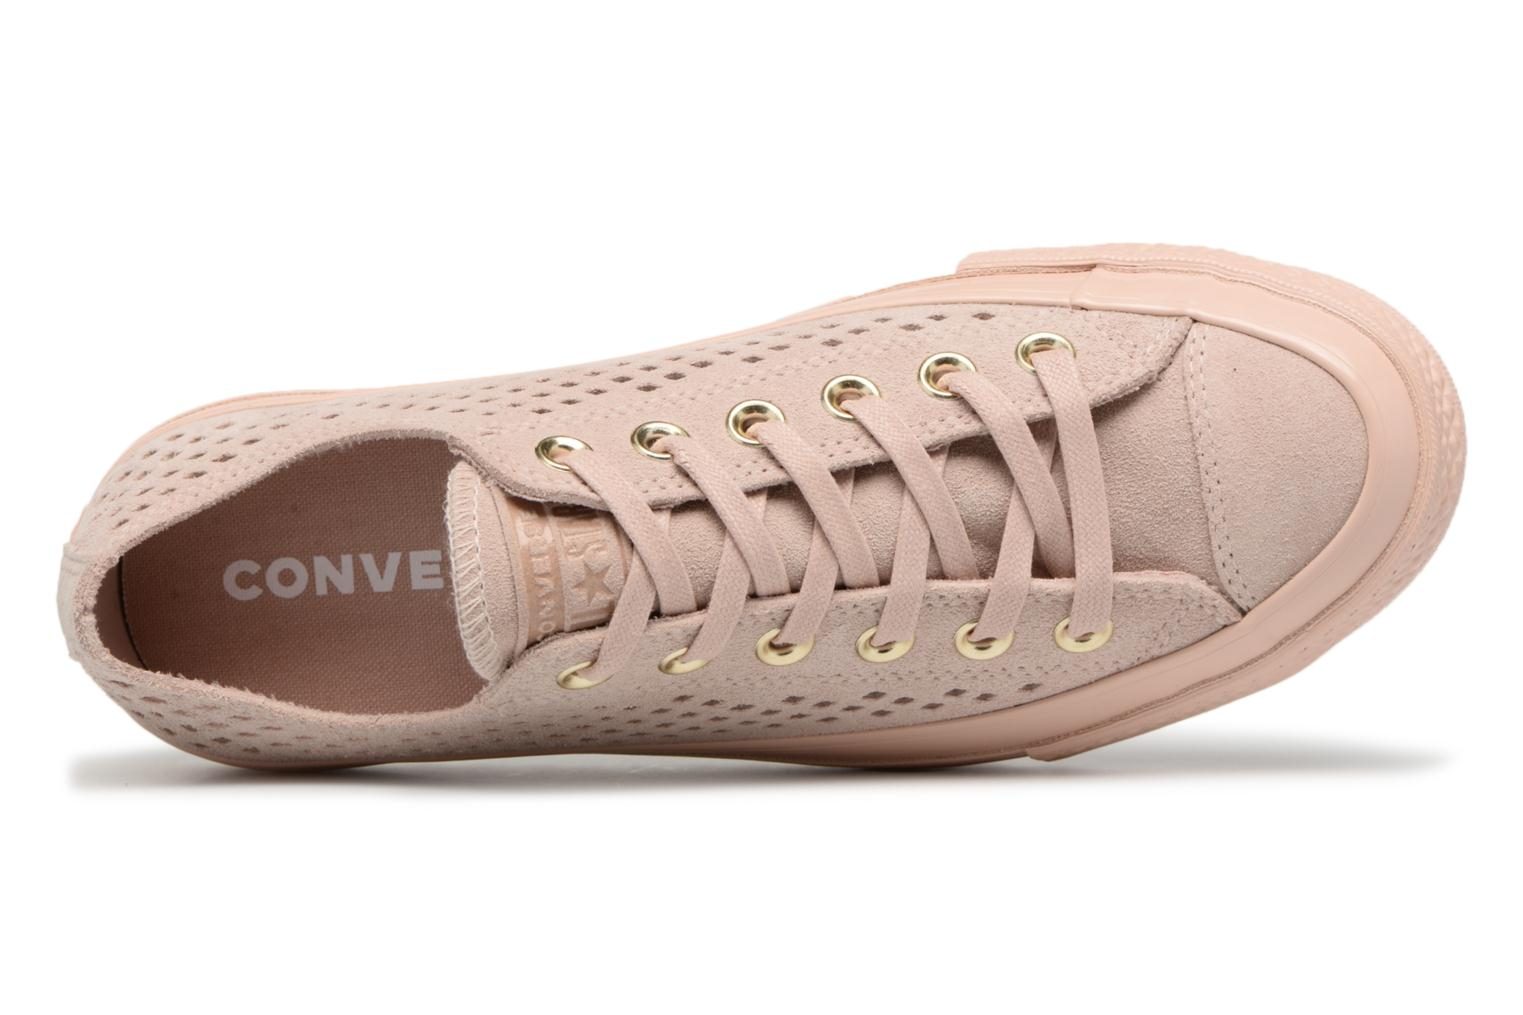 Mono Chuck Star Beige Taylor Particle Lift Ox Ripple Converse Perf Suede All qdYw4YR